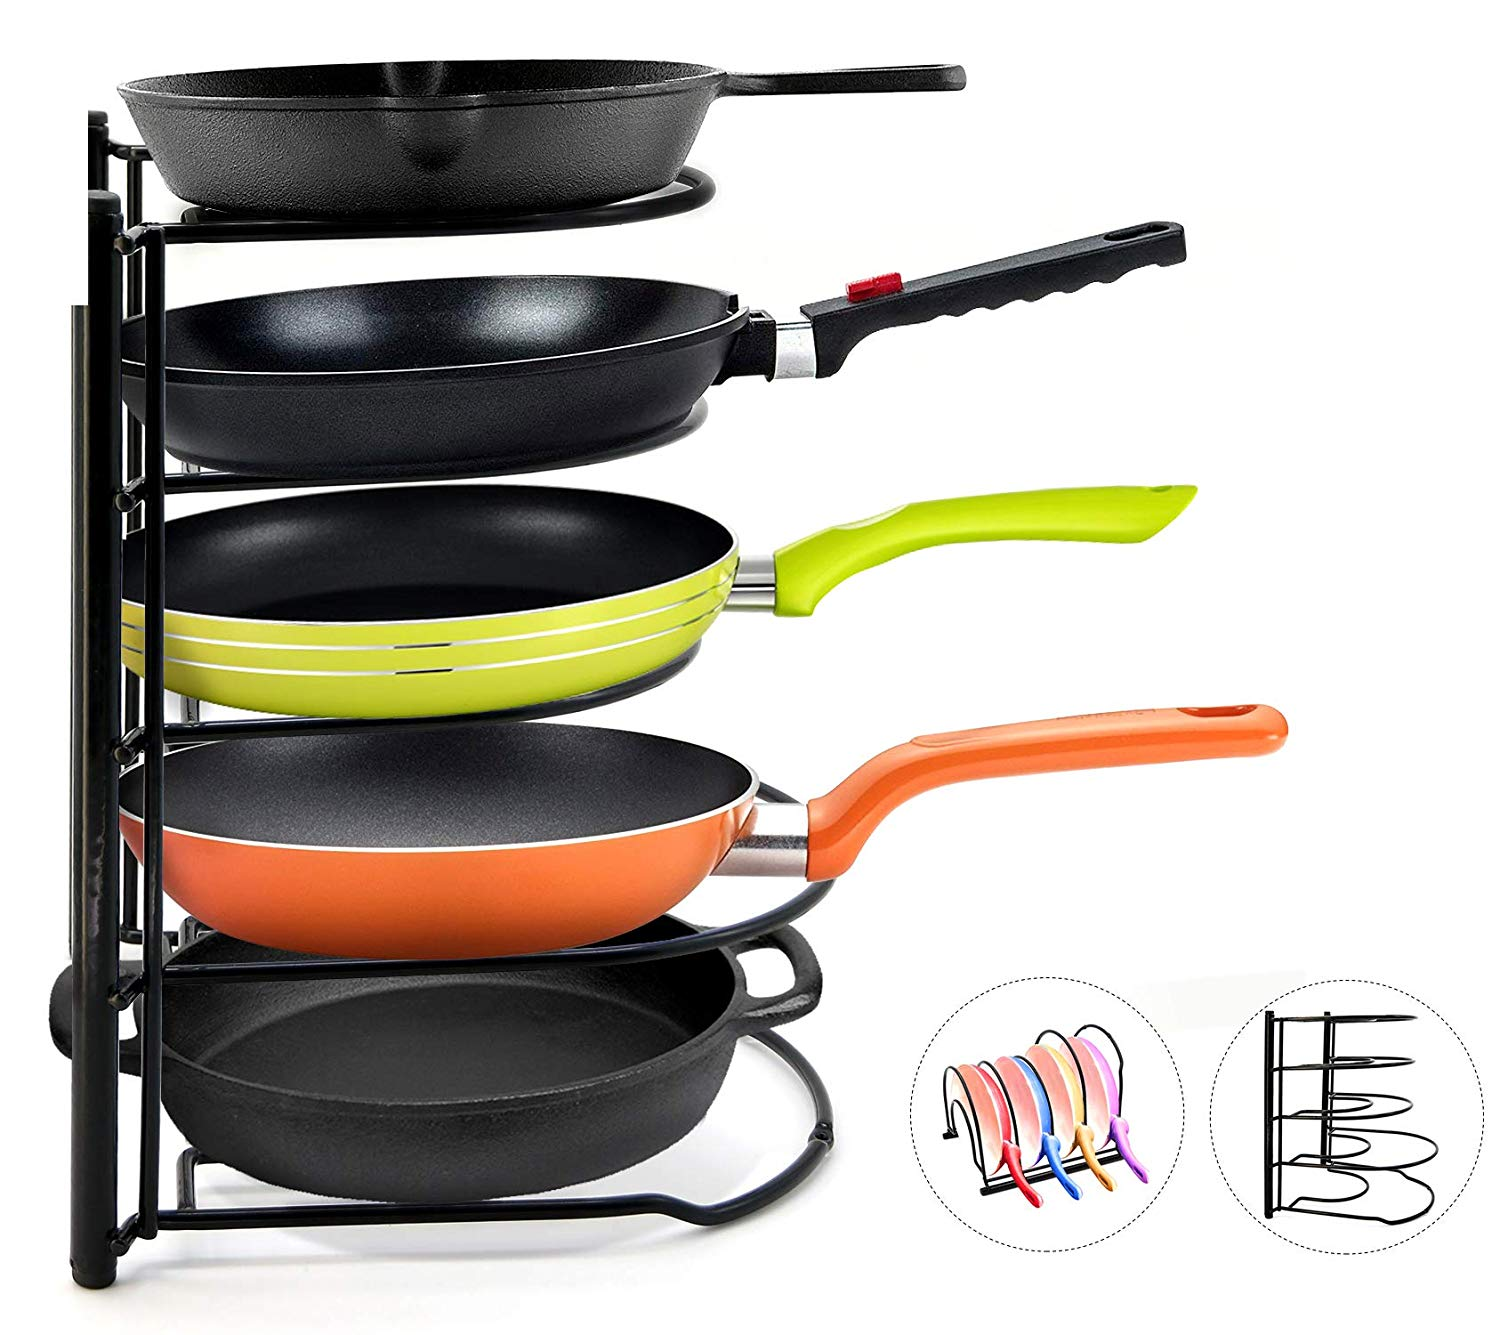 5-Tier Heavy Duty Pot Pan Organizer Pot Racks Cookware lids Holder for Cabinet Worktop Storage Kitchen Pot Lid Organizer Rack-Bottom Tier for Larger Pans(Black)